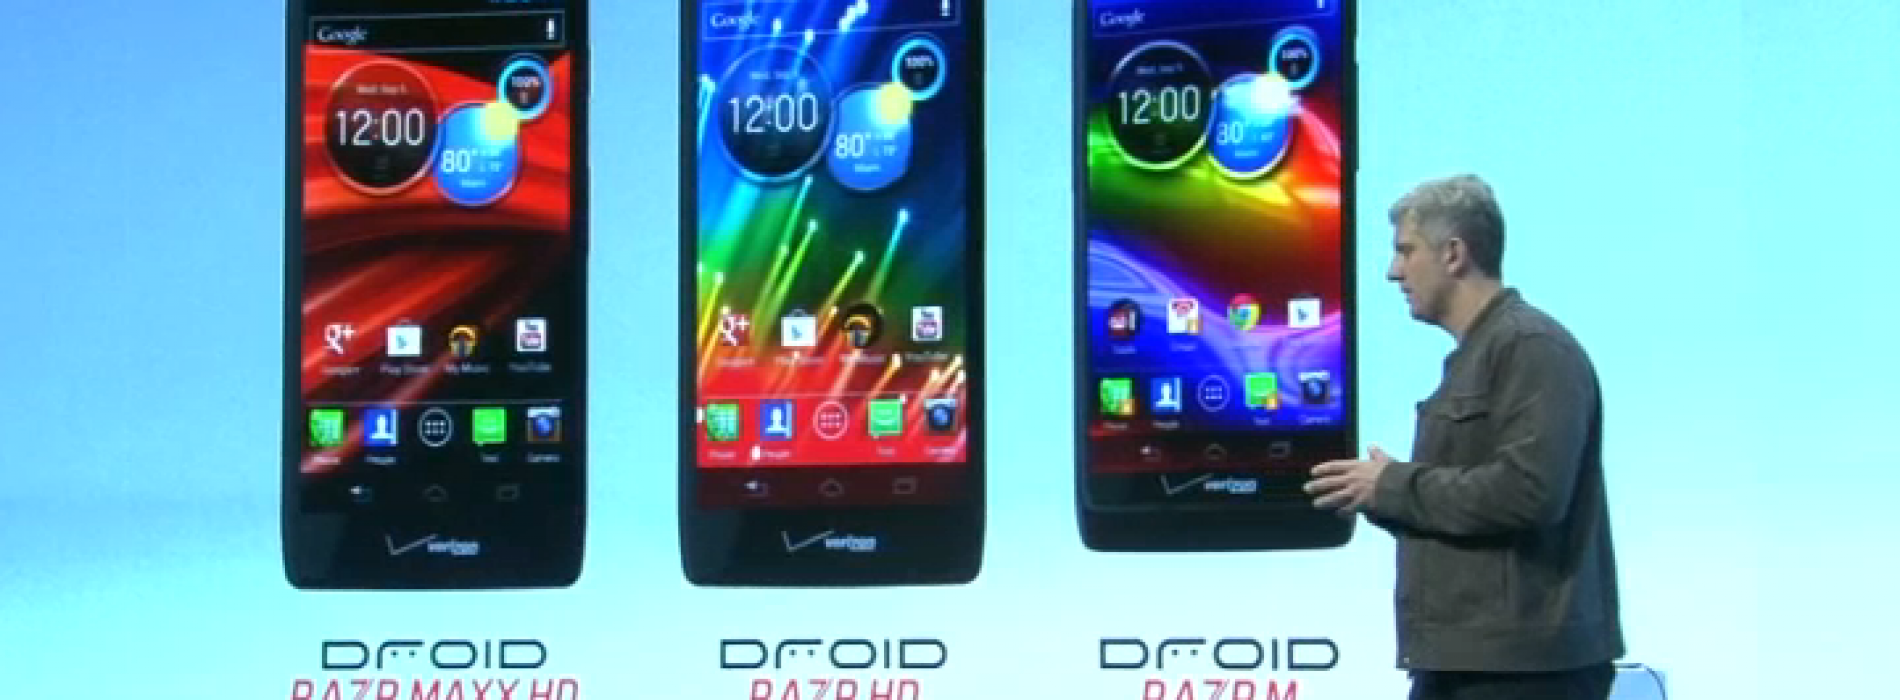 The $99 Motorola Droid Razr M arrives next week (Sept 13)